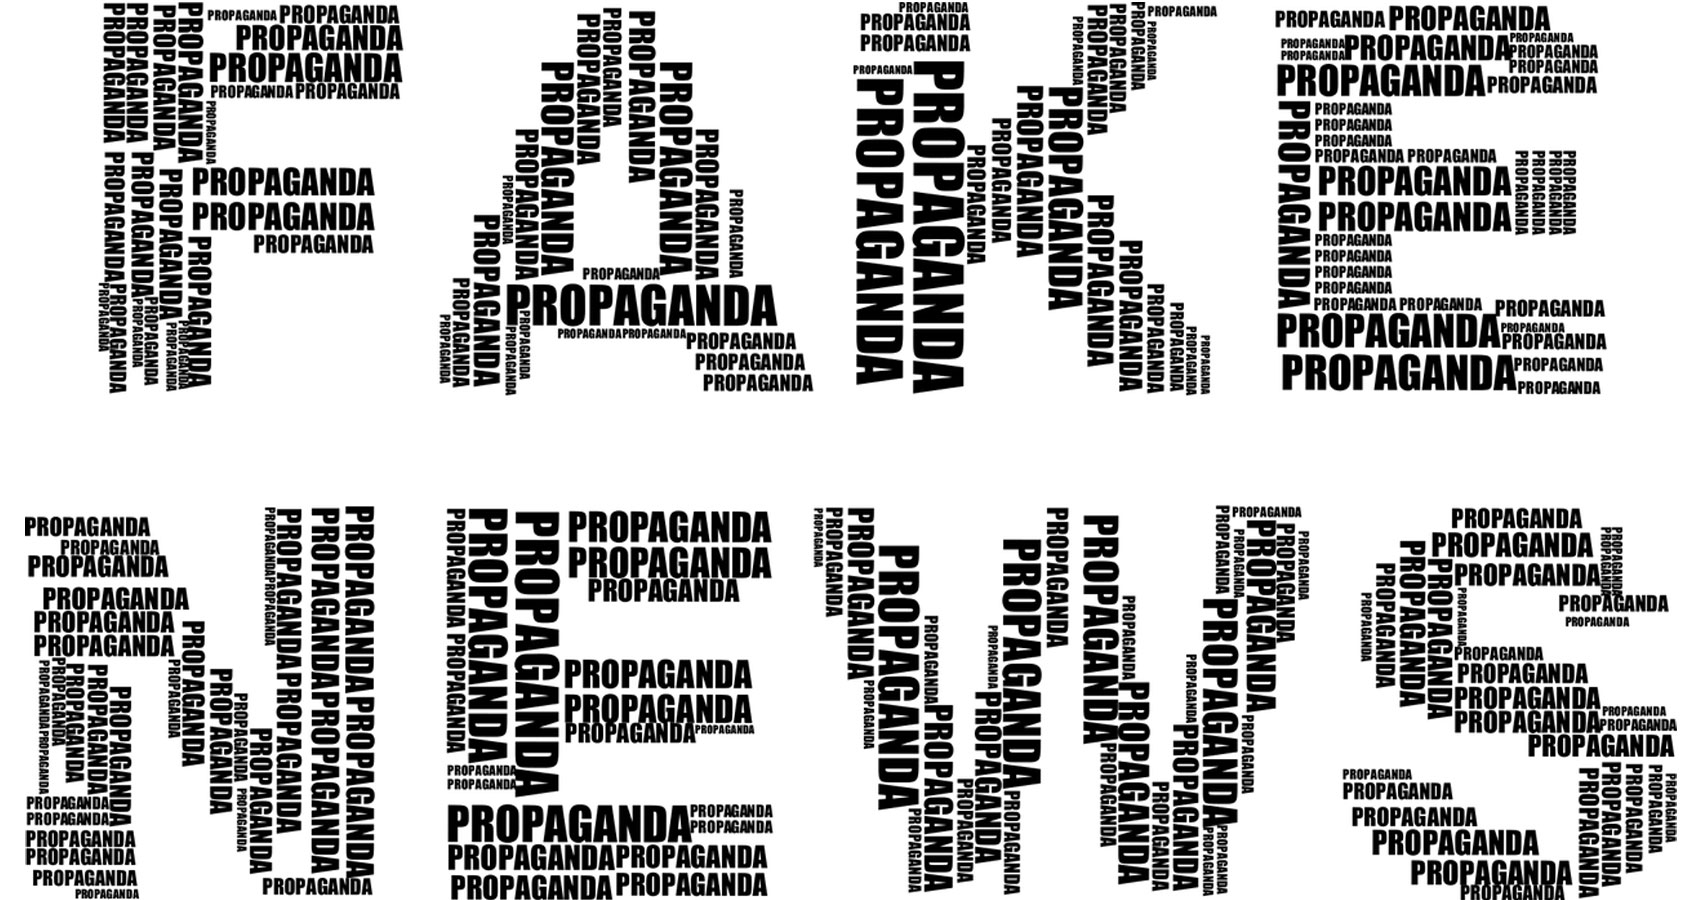 Fake News Generational Genocide, by SMiles at Spillwords.com